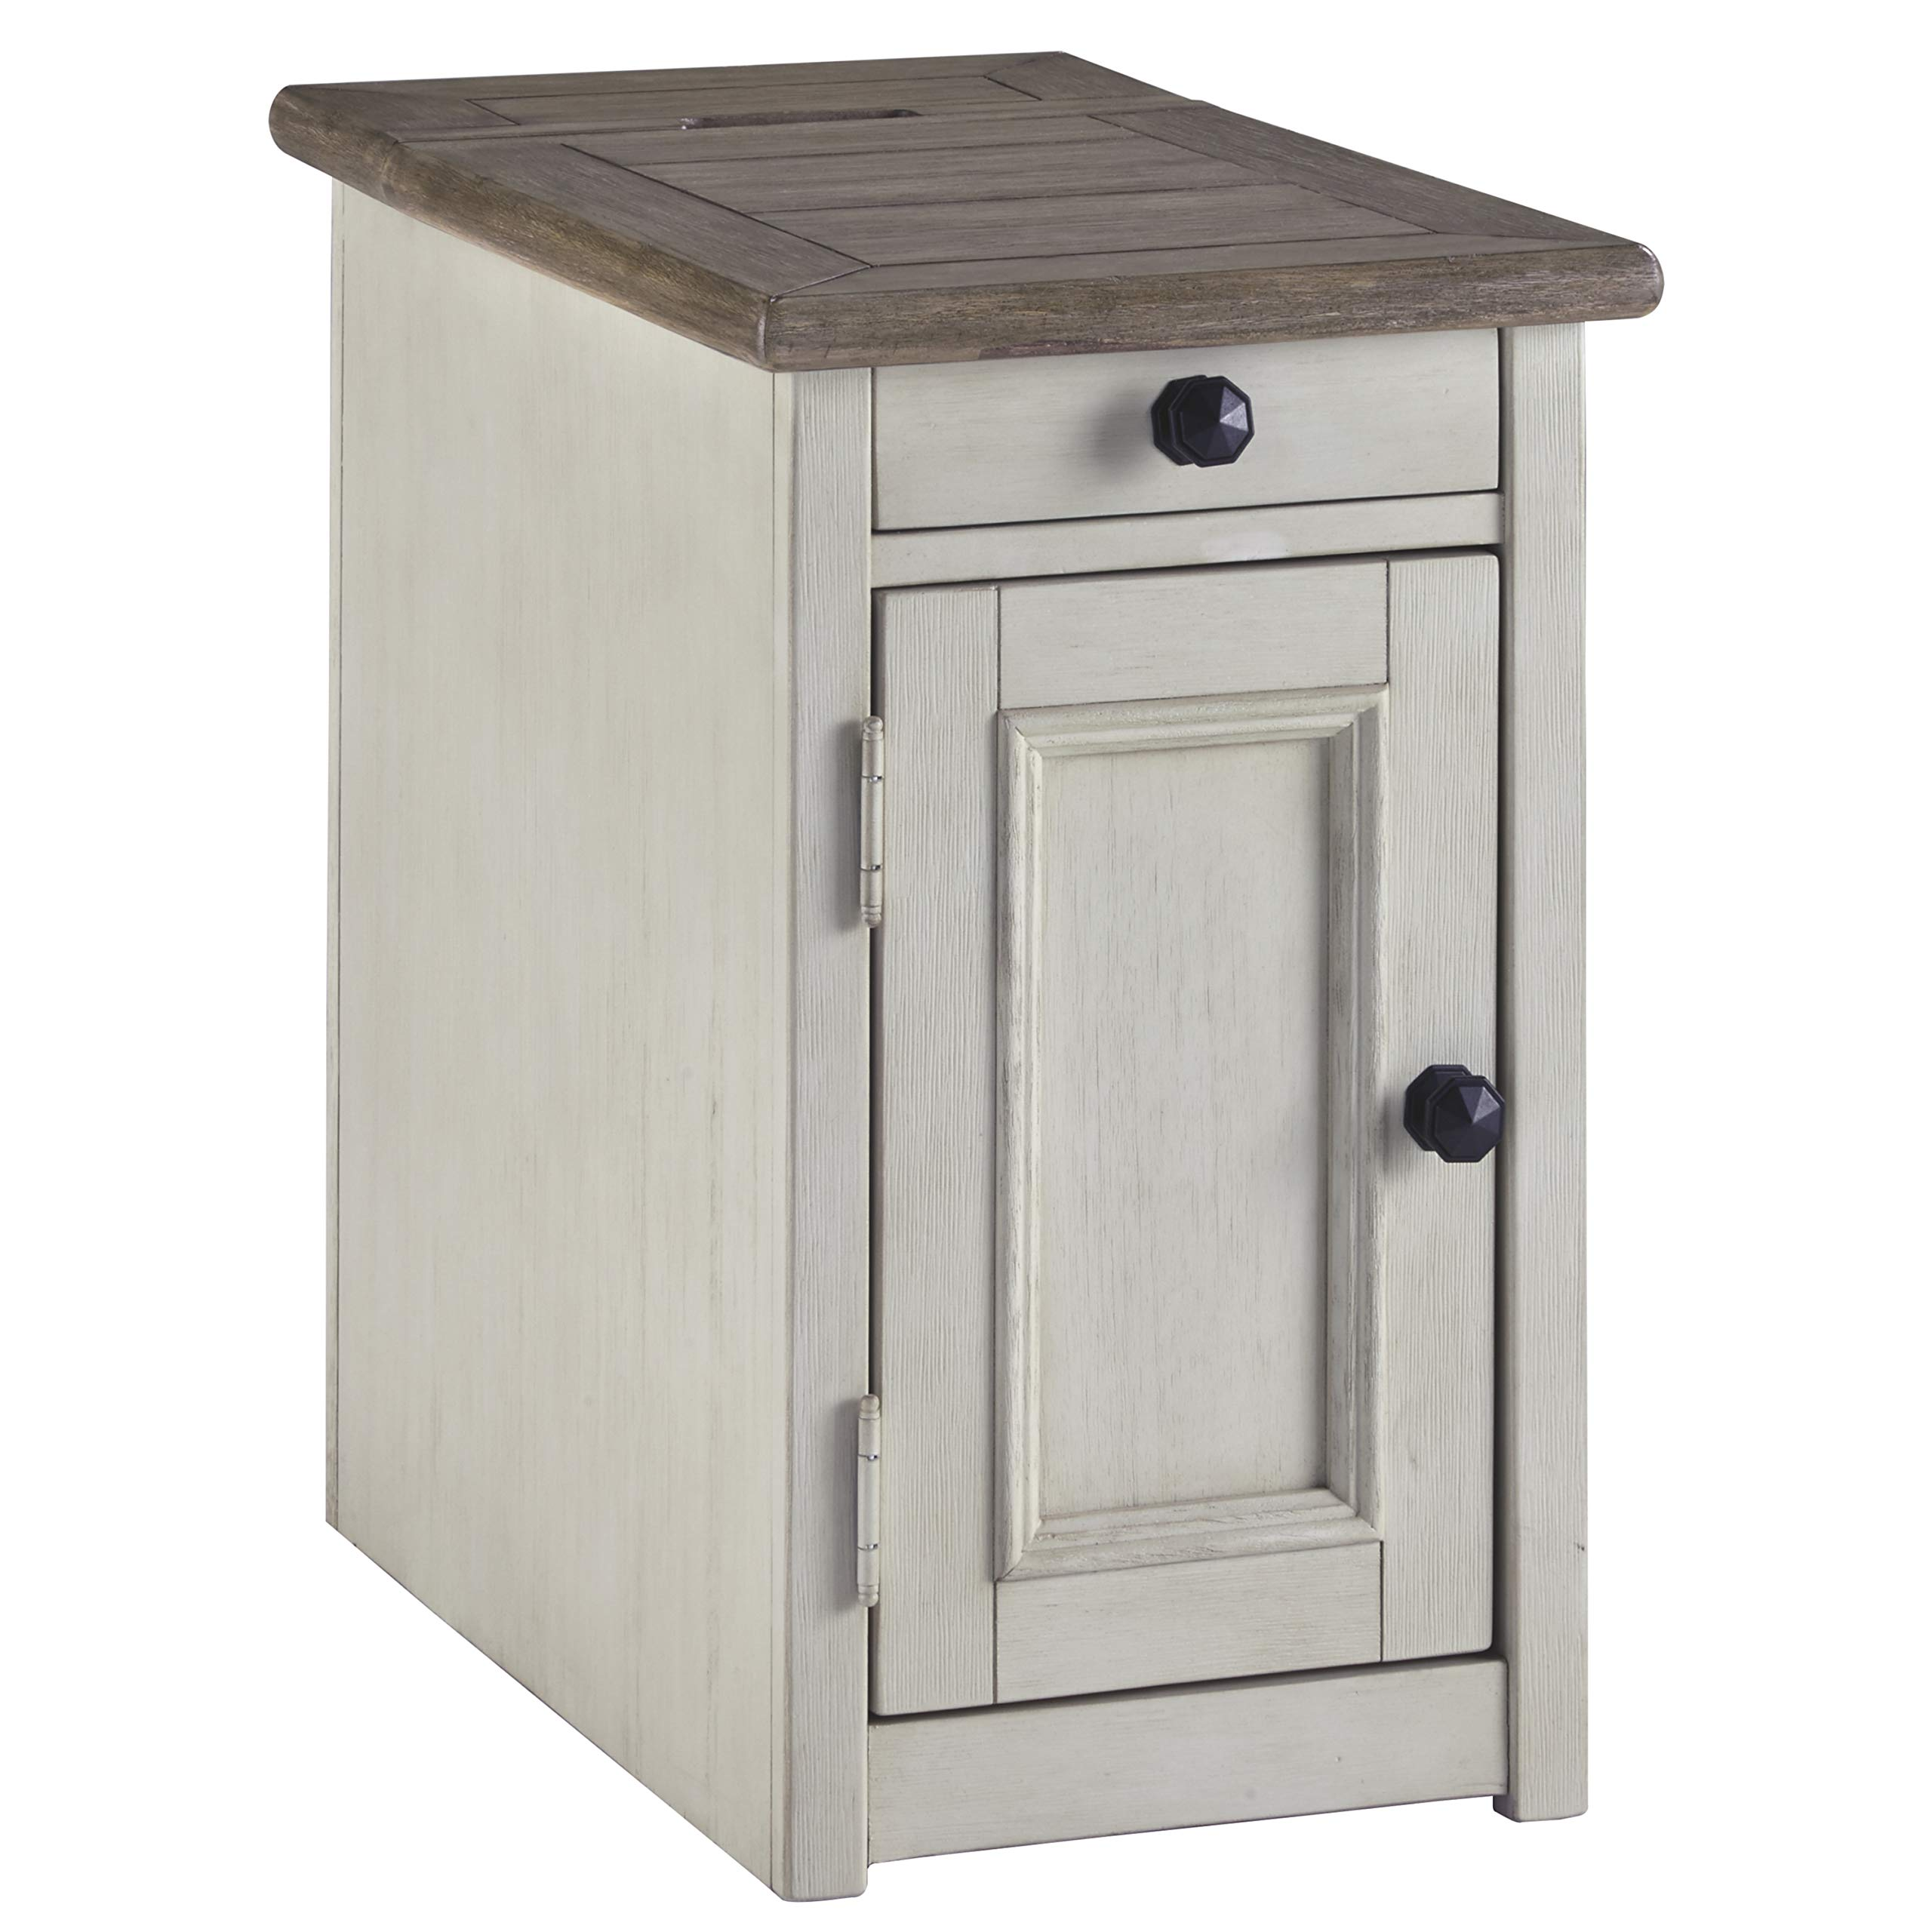 Ashley Furniture Signature Design - Bolanburg Chairside End Table, Two-Tone by Signature Design by Ashley